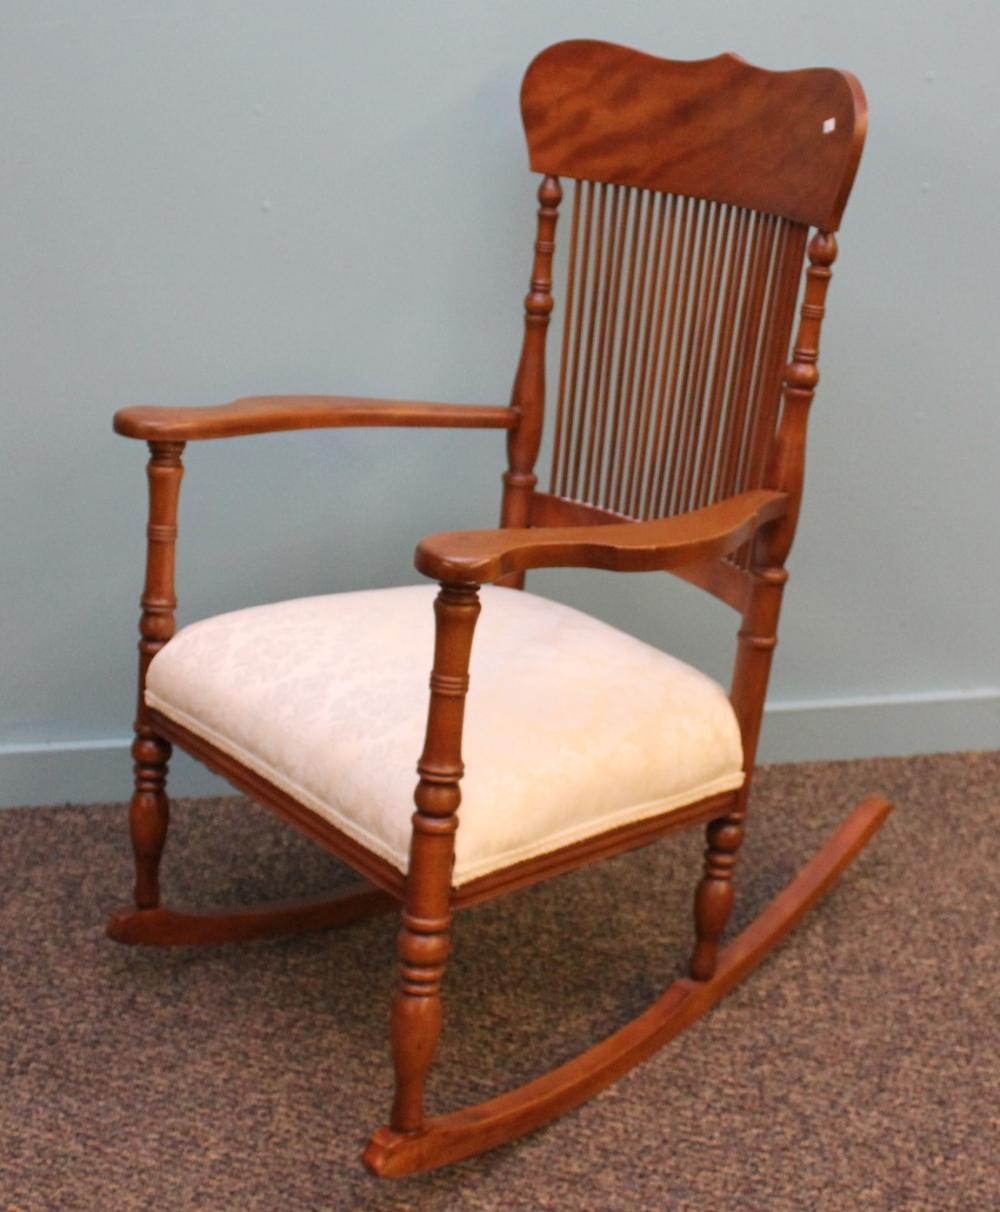 Antique Comb Back Rocking Chair